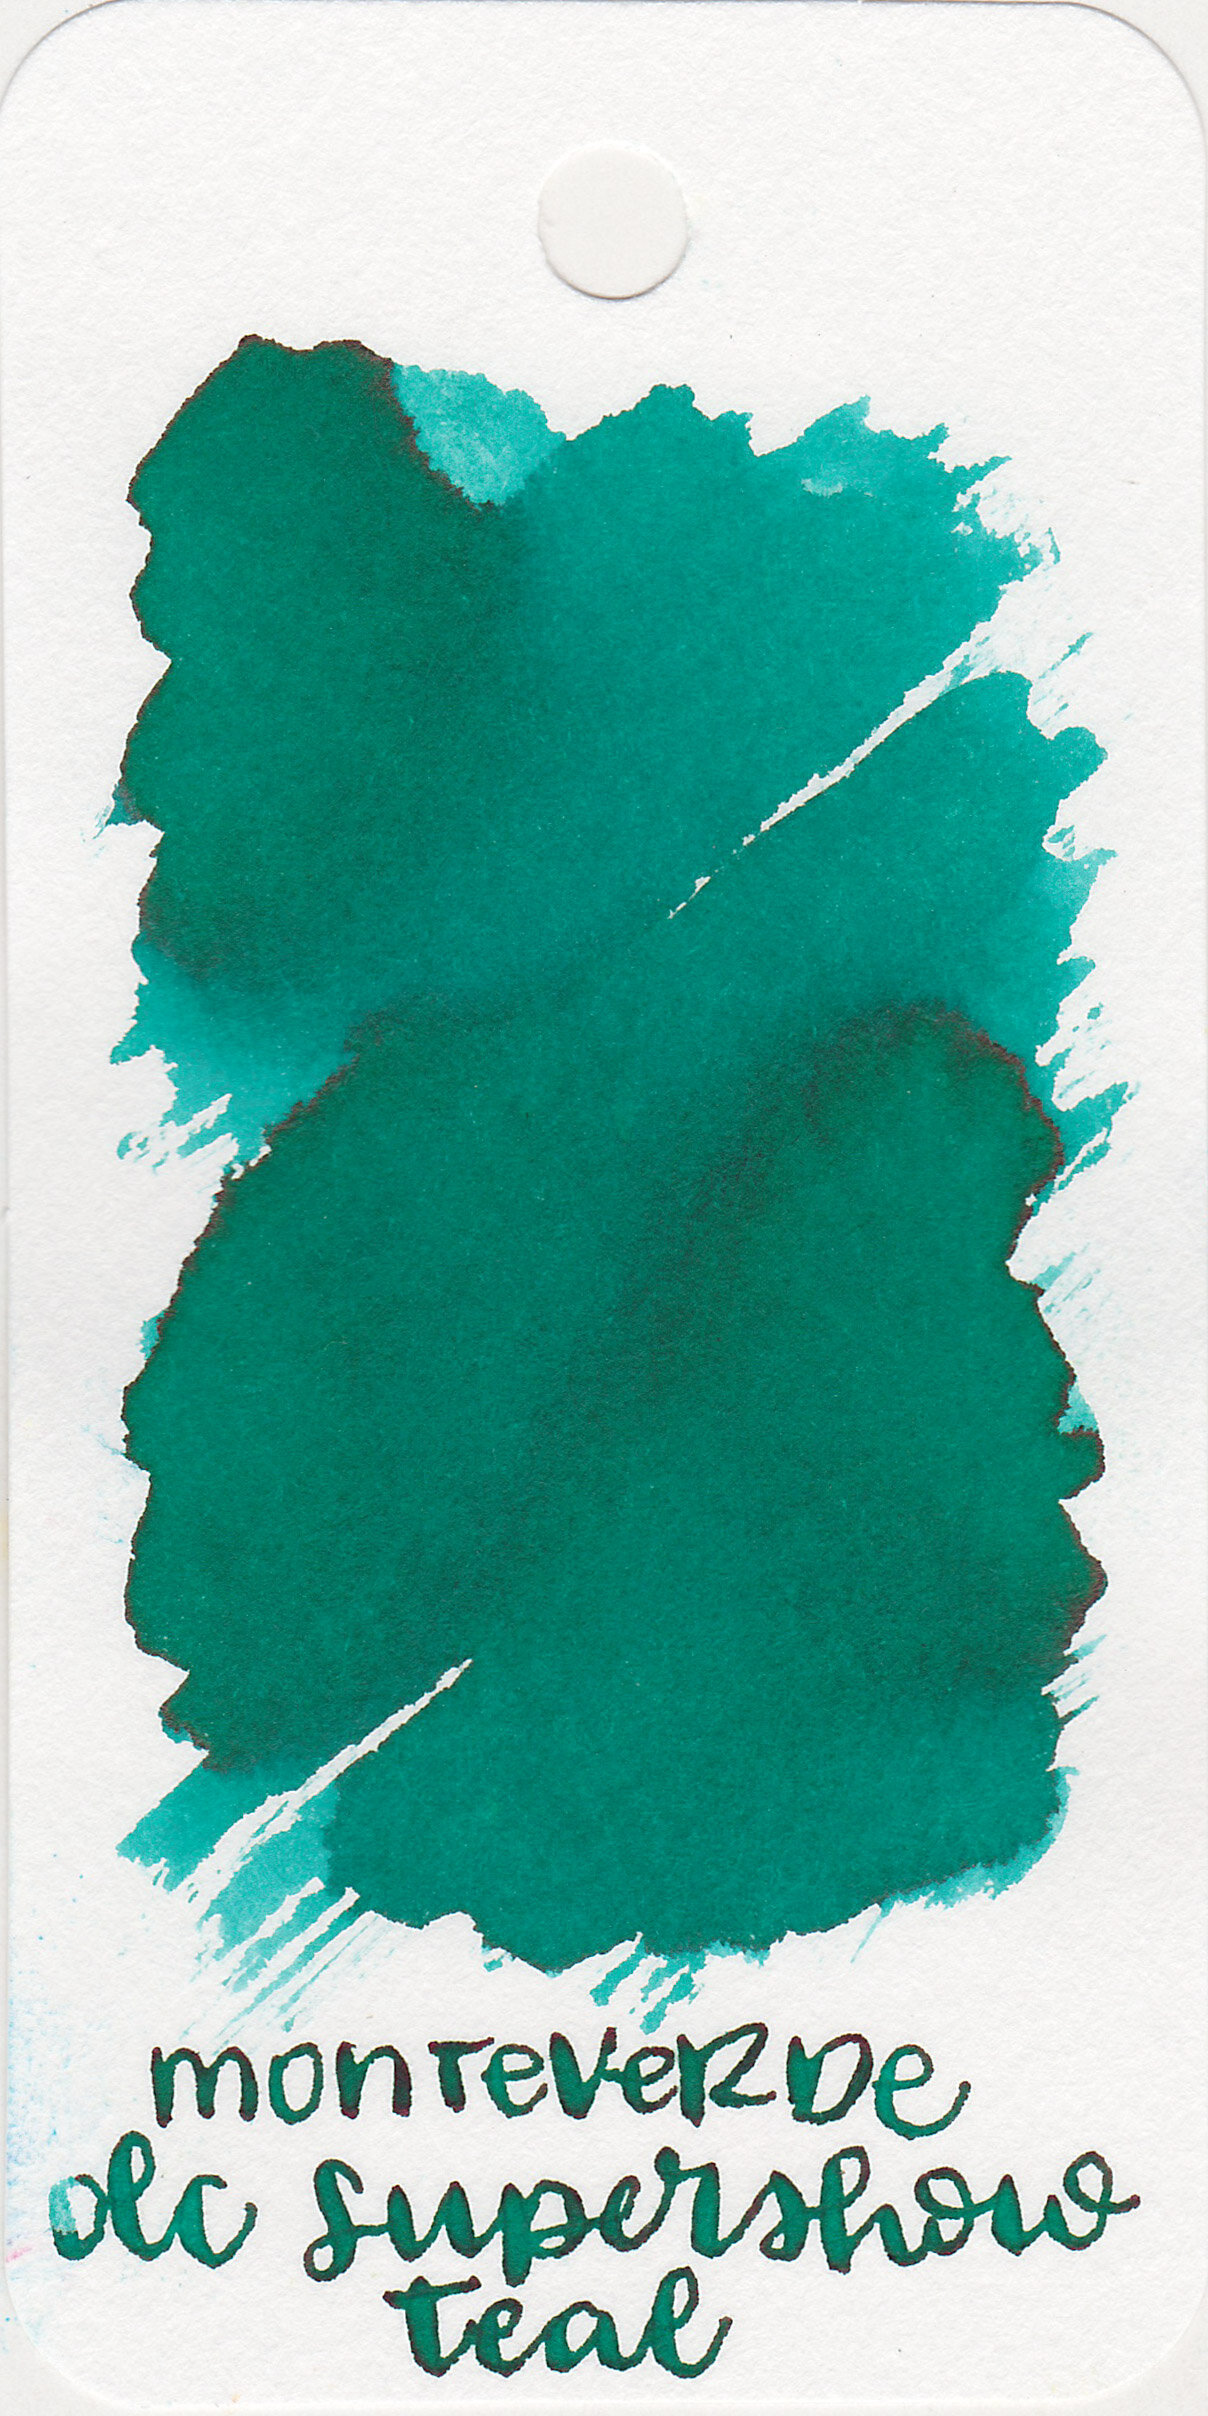 The color: - DC Supershow Teal is a beautiful medium teal with shading.